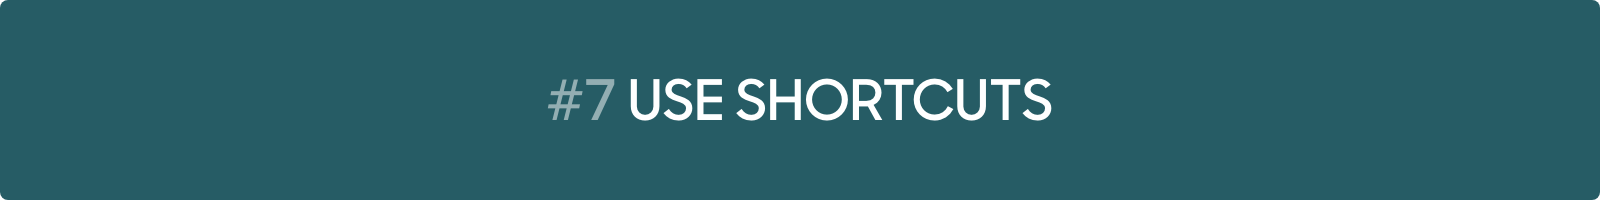 Conversational Marketing Tip #7: Use shortcuts